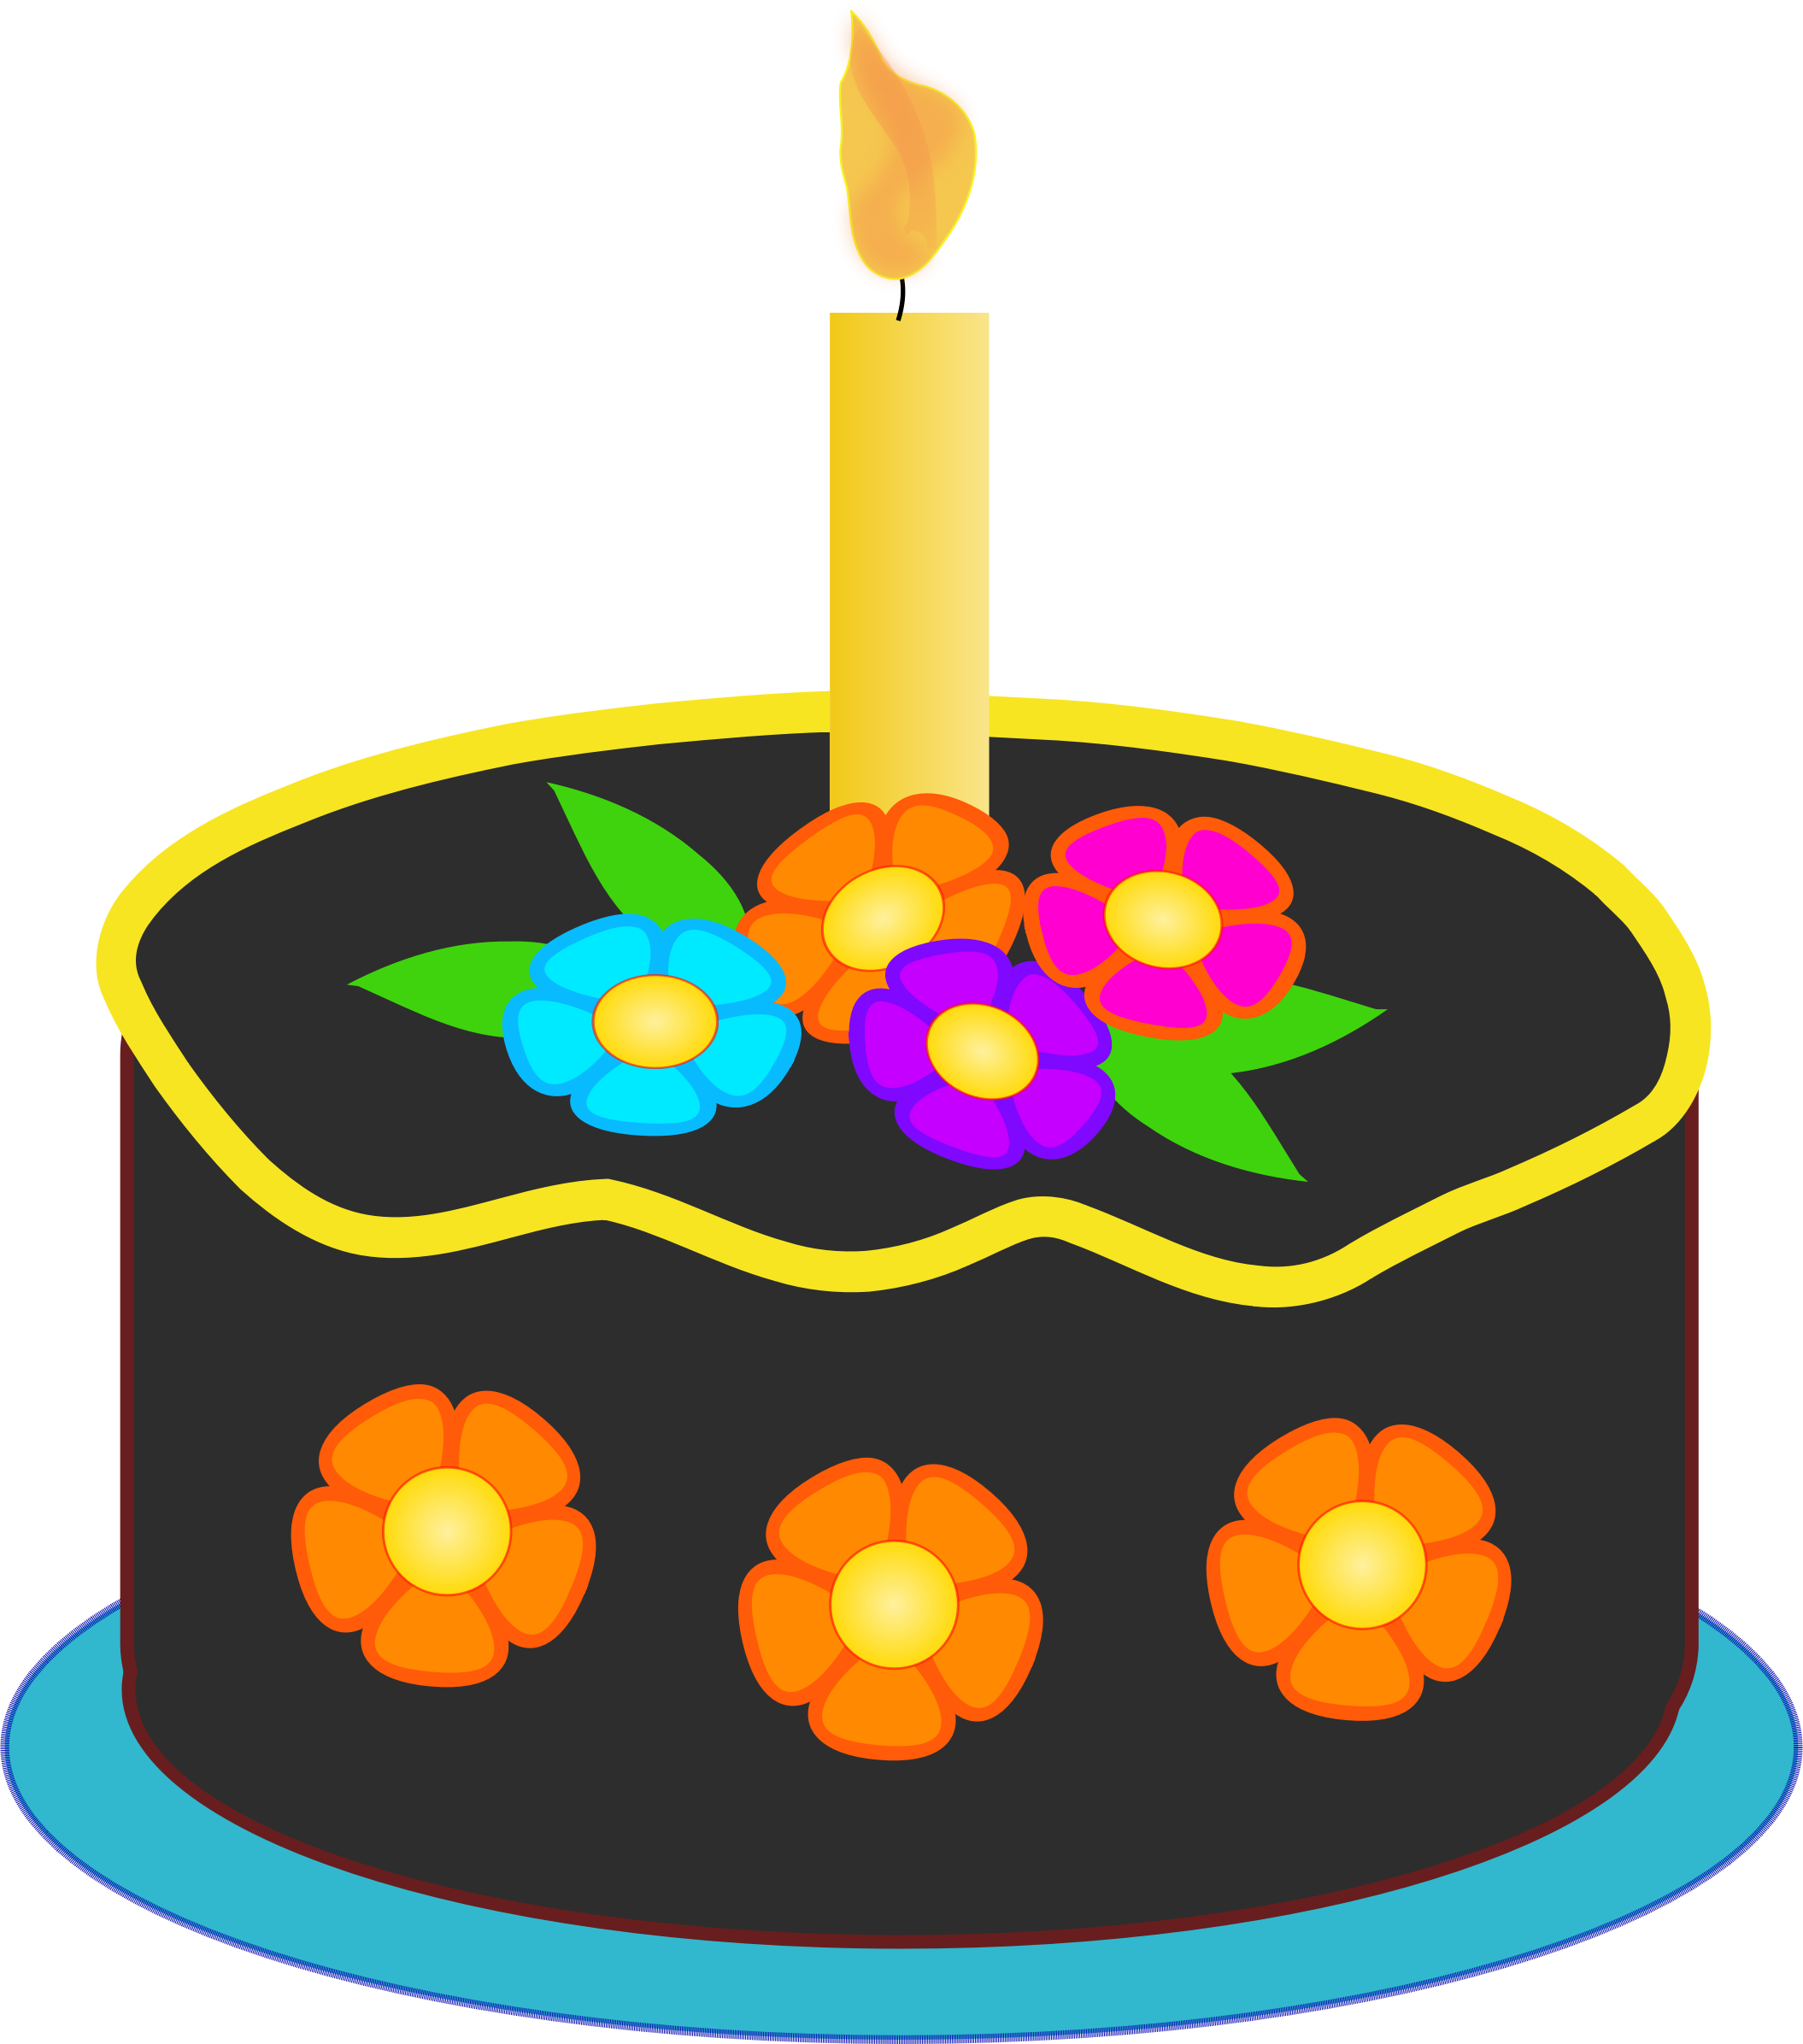 Clipart balloon birthday cake. Chocolate big image png